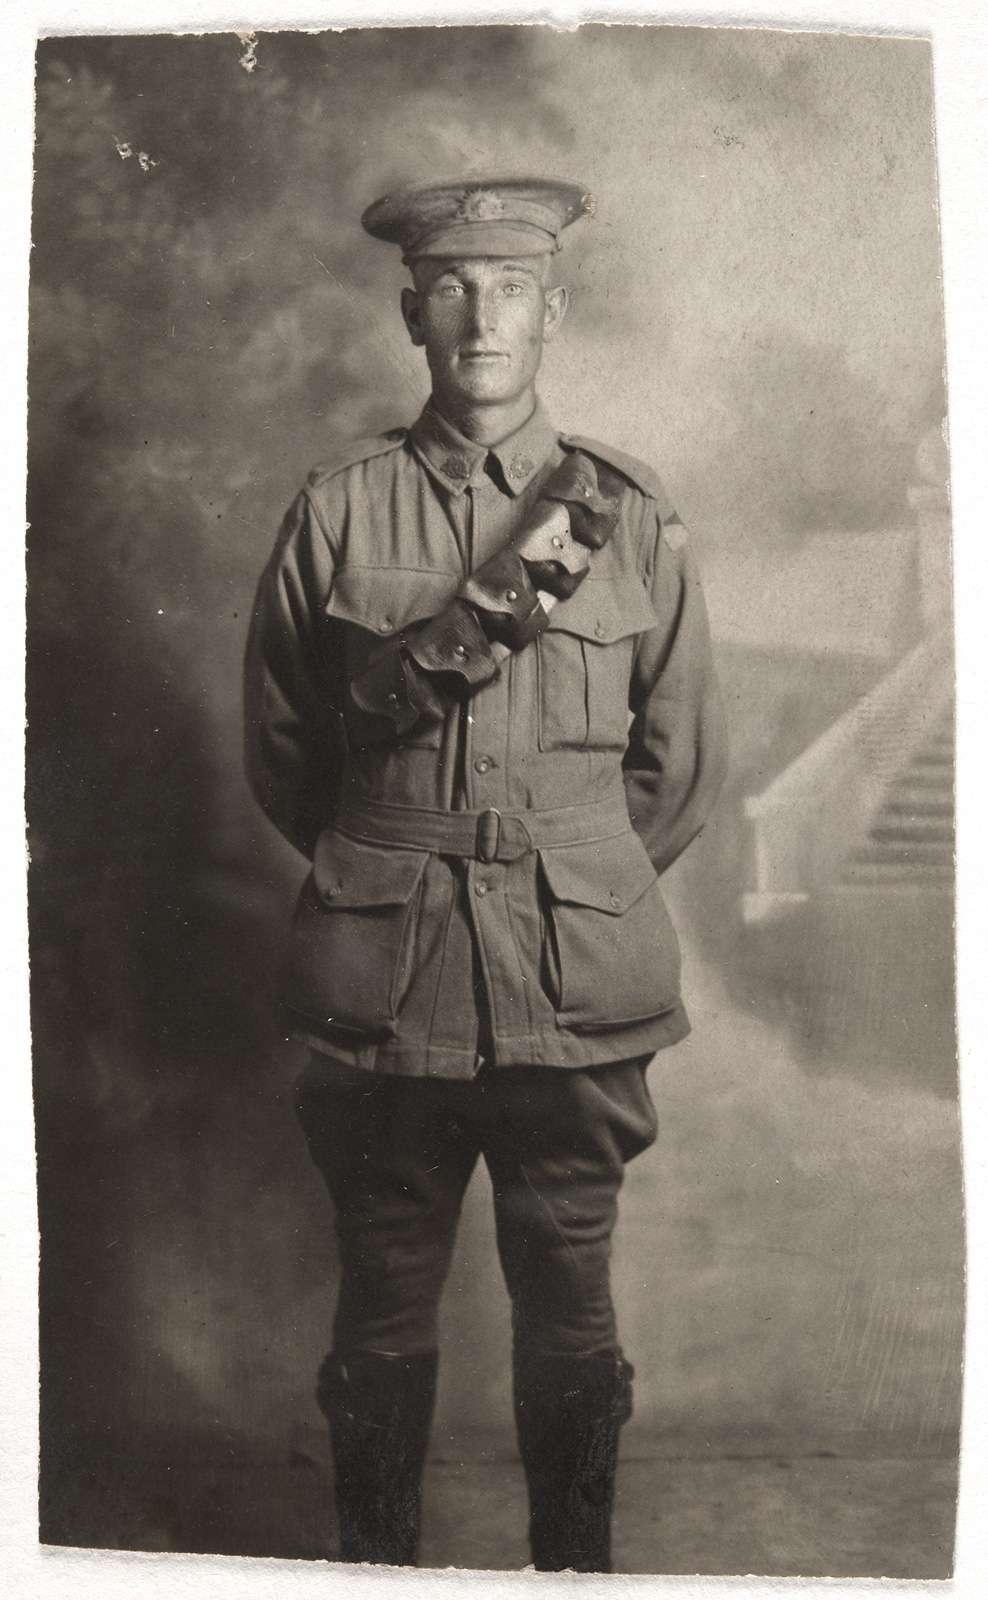 Black and white postcard of young man in uniform